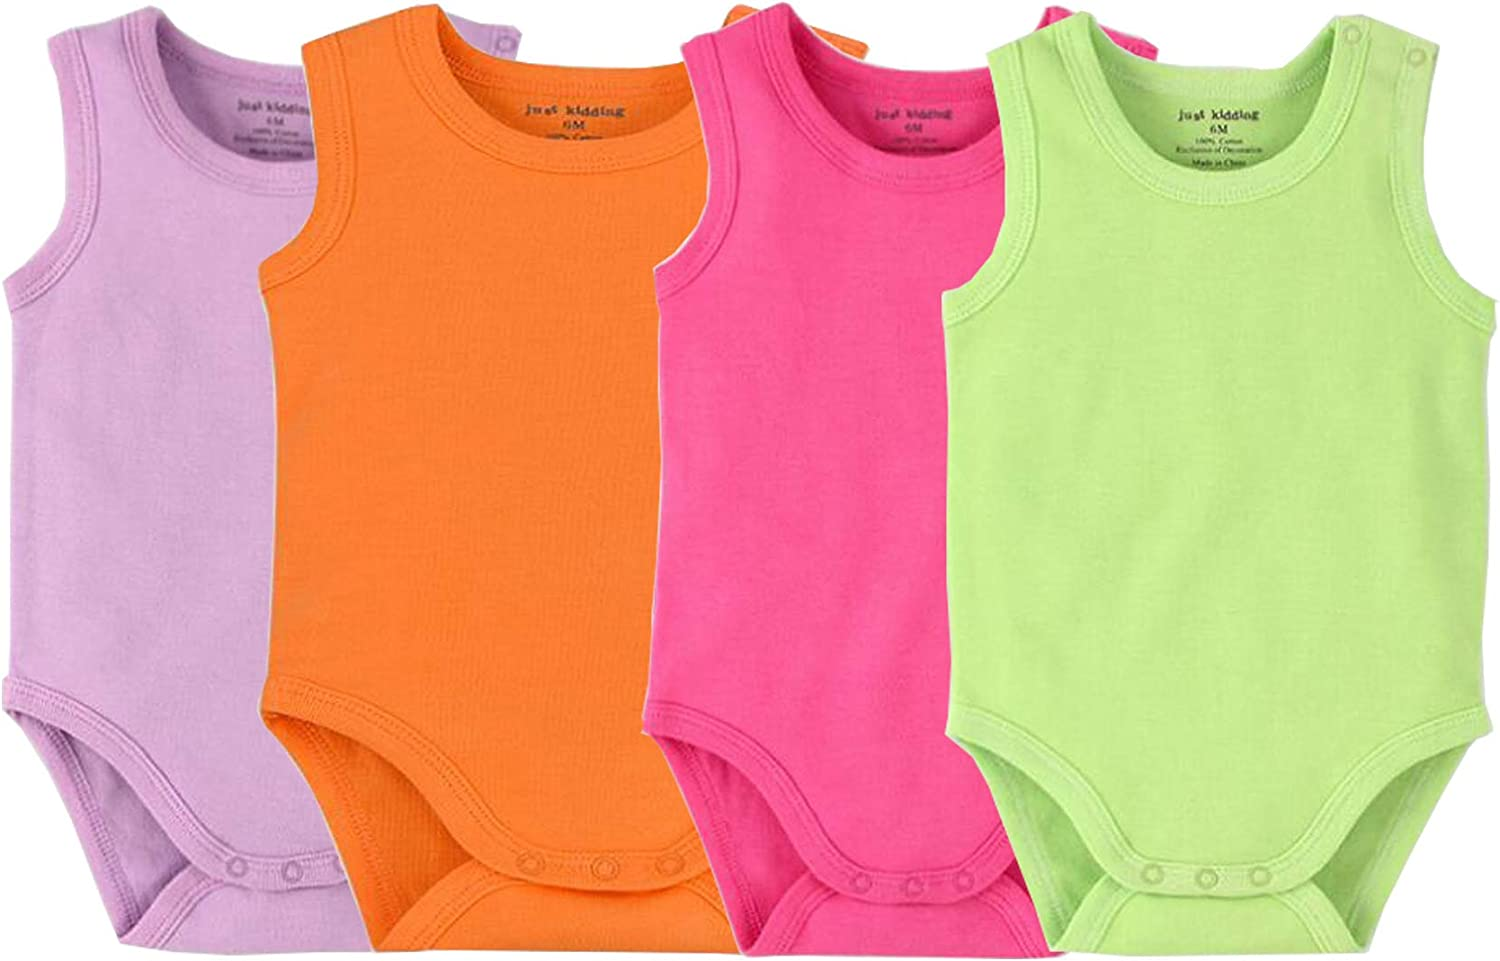 Infant//Toddler Baby Girls Boys Sleeveless Onesies Tank Top Cotton Baby Bodysuit Pack of Summer Baby Clothes Outfit